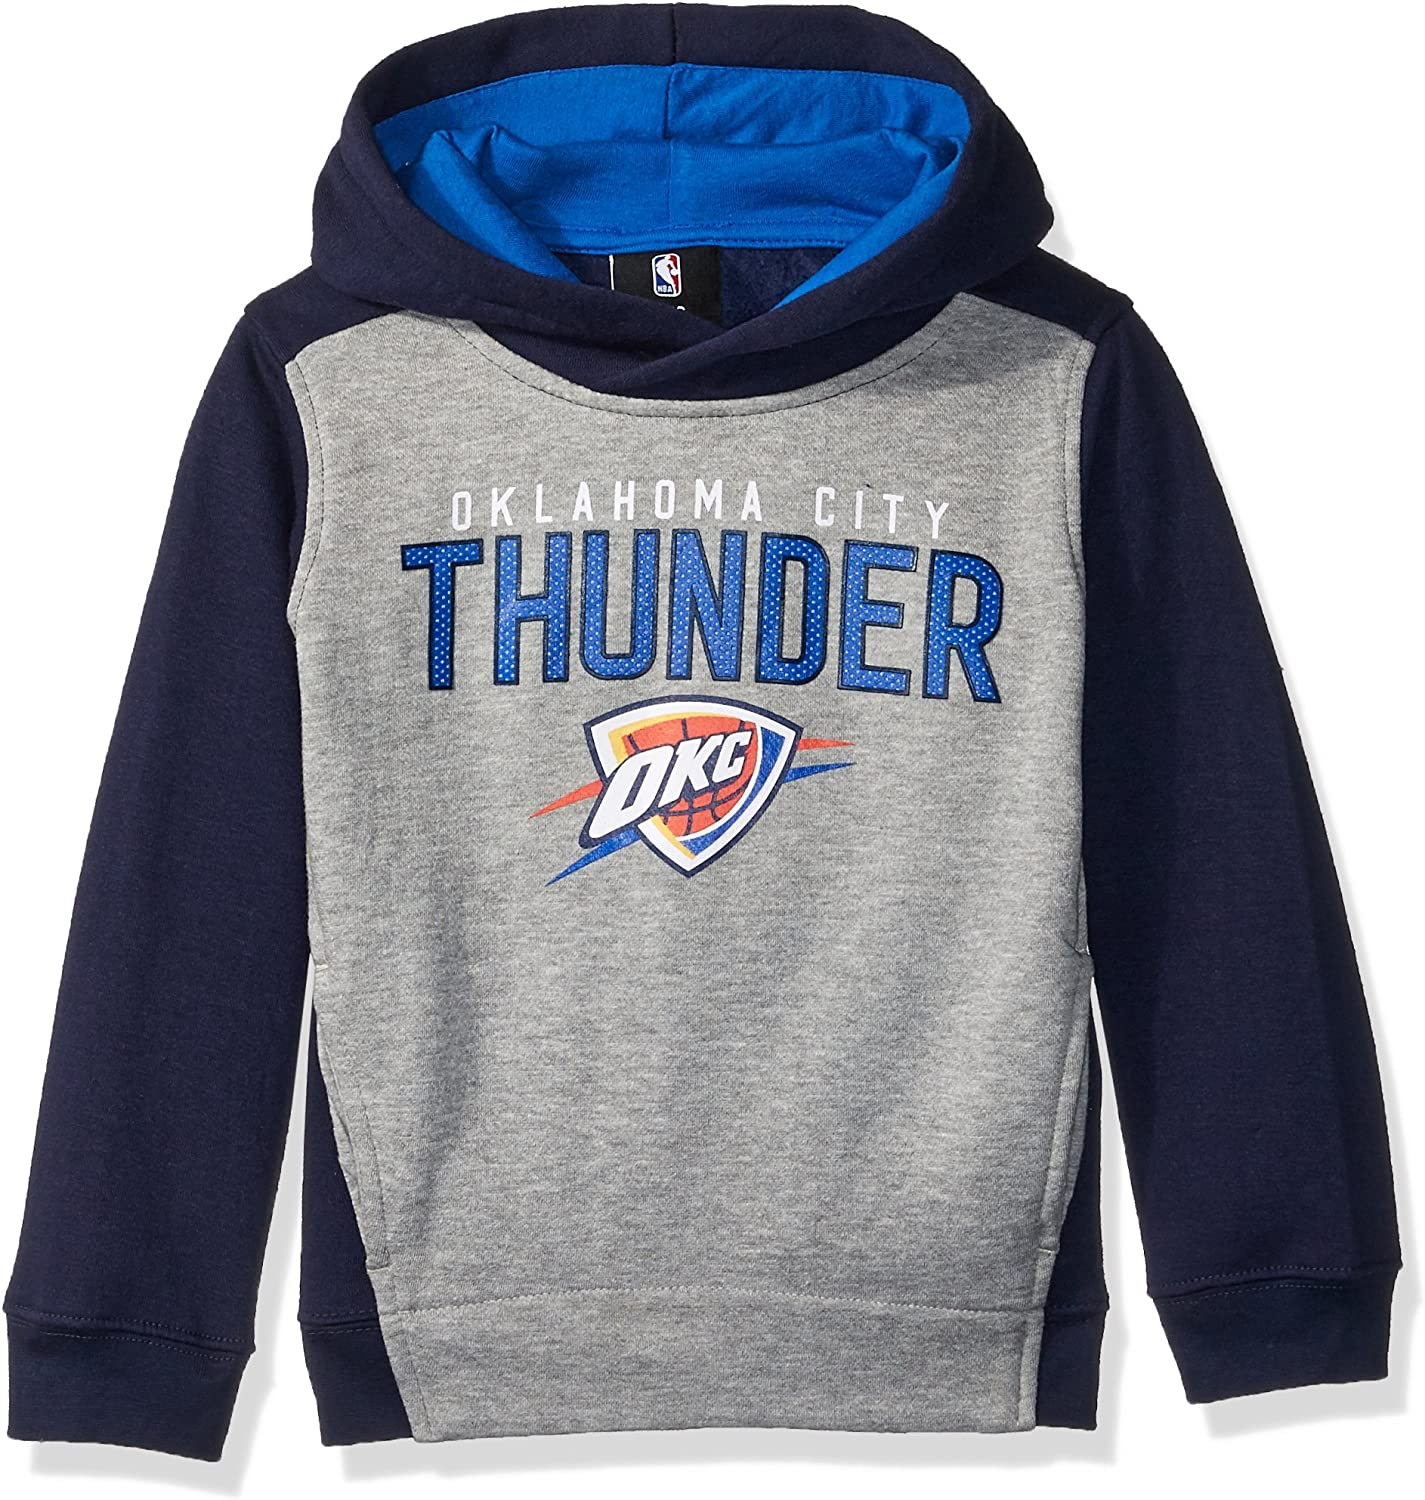 Youth Small Heather Grey 8 NBA by Outerstuff NBA Kids /& Youth Boys New York Knicks Stated Full Zip Fleece Hoodie